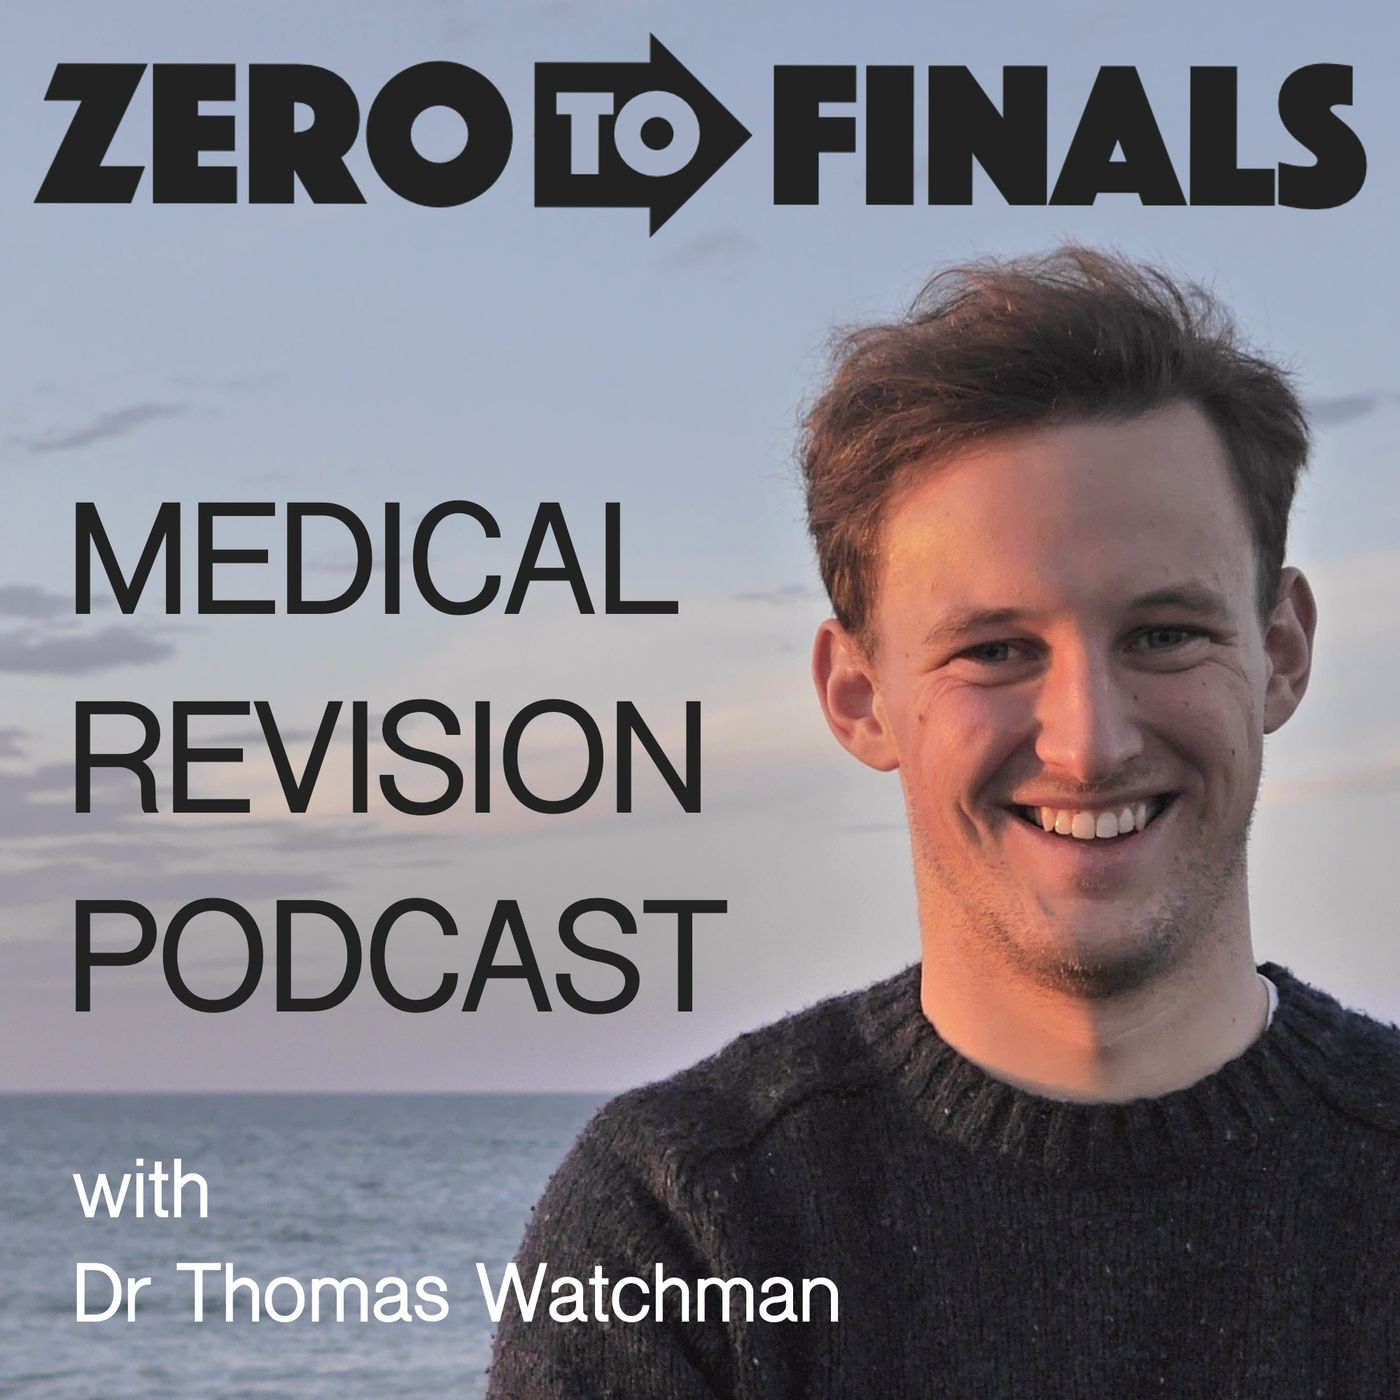 The Zero to Finals Medical Revision Podcast